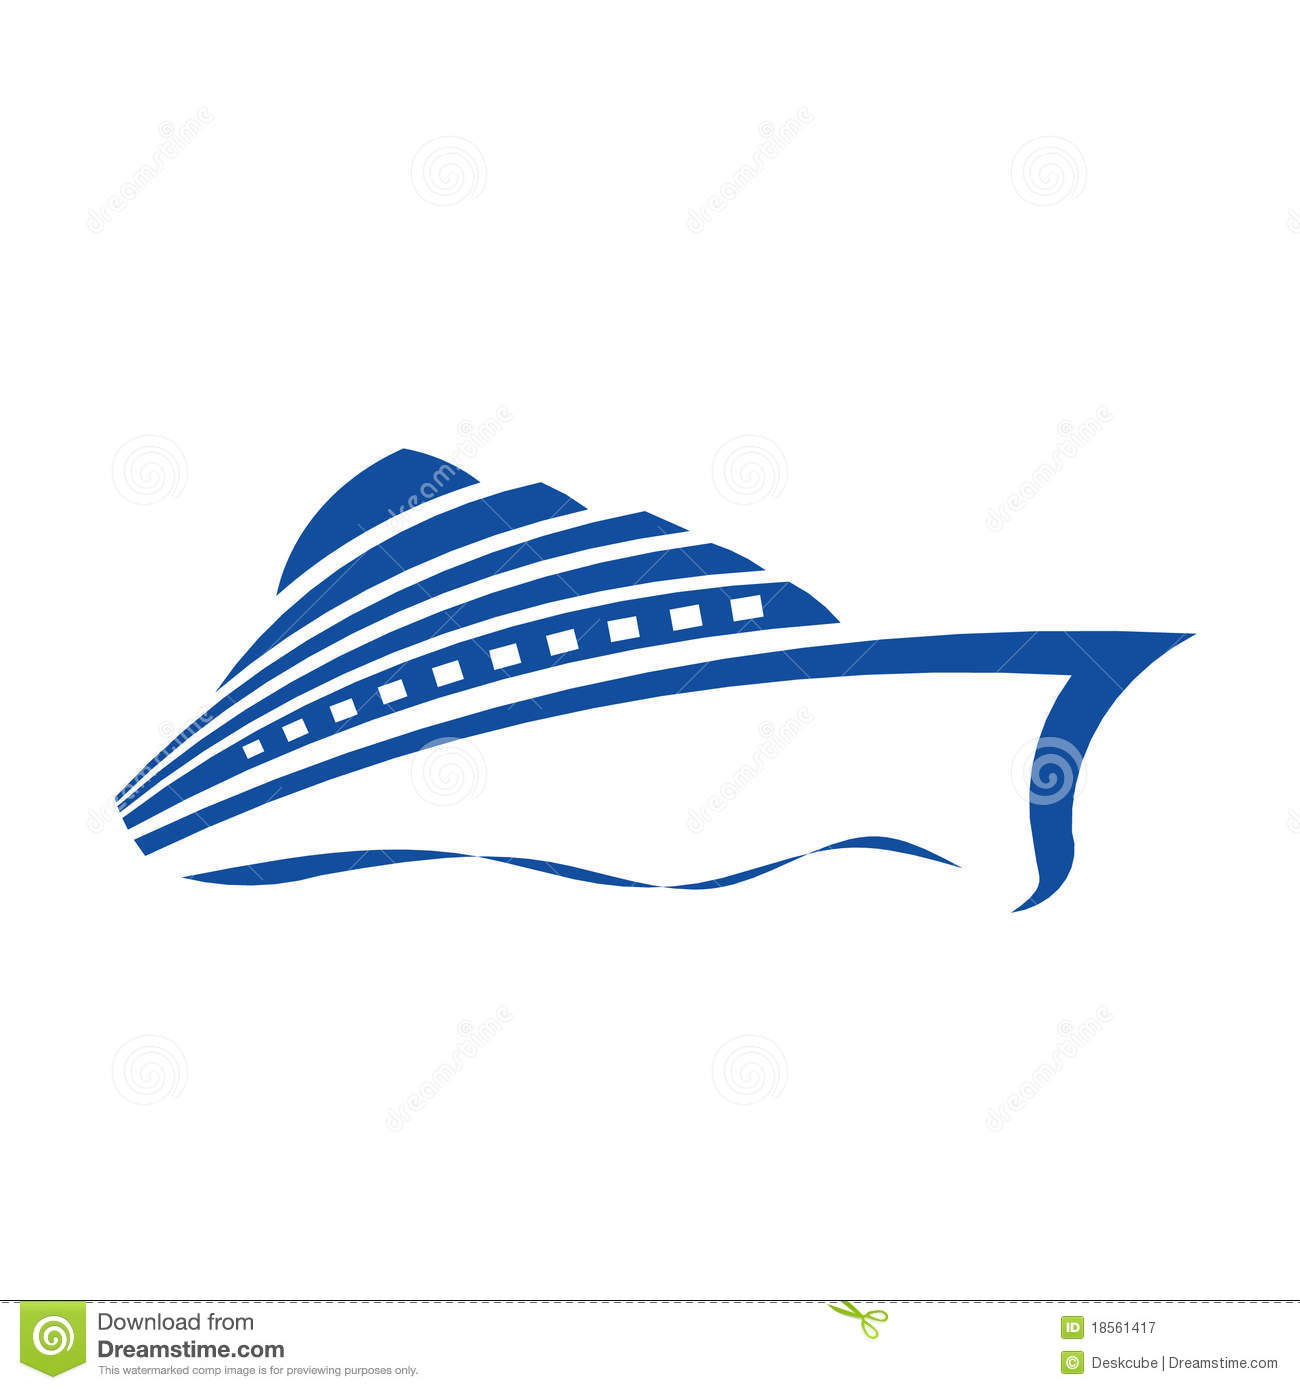 Cruise Ship Logo Royalty Free Stock Photography - Image: 18561417